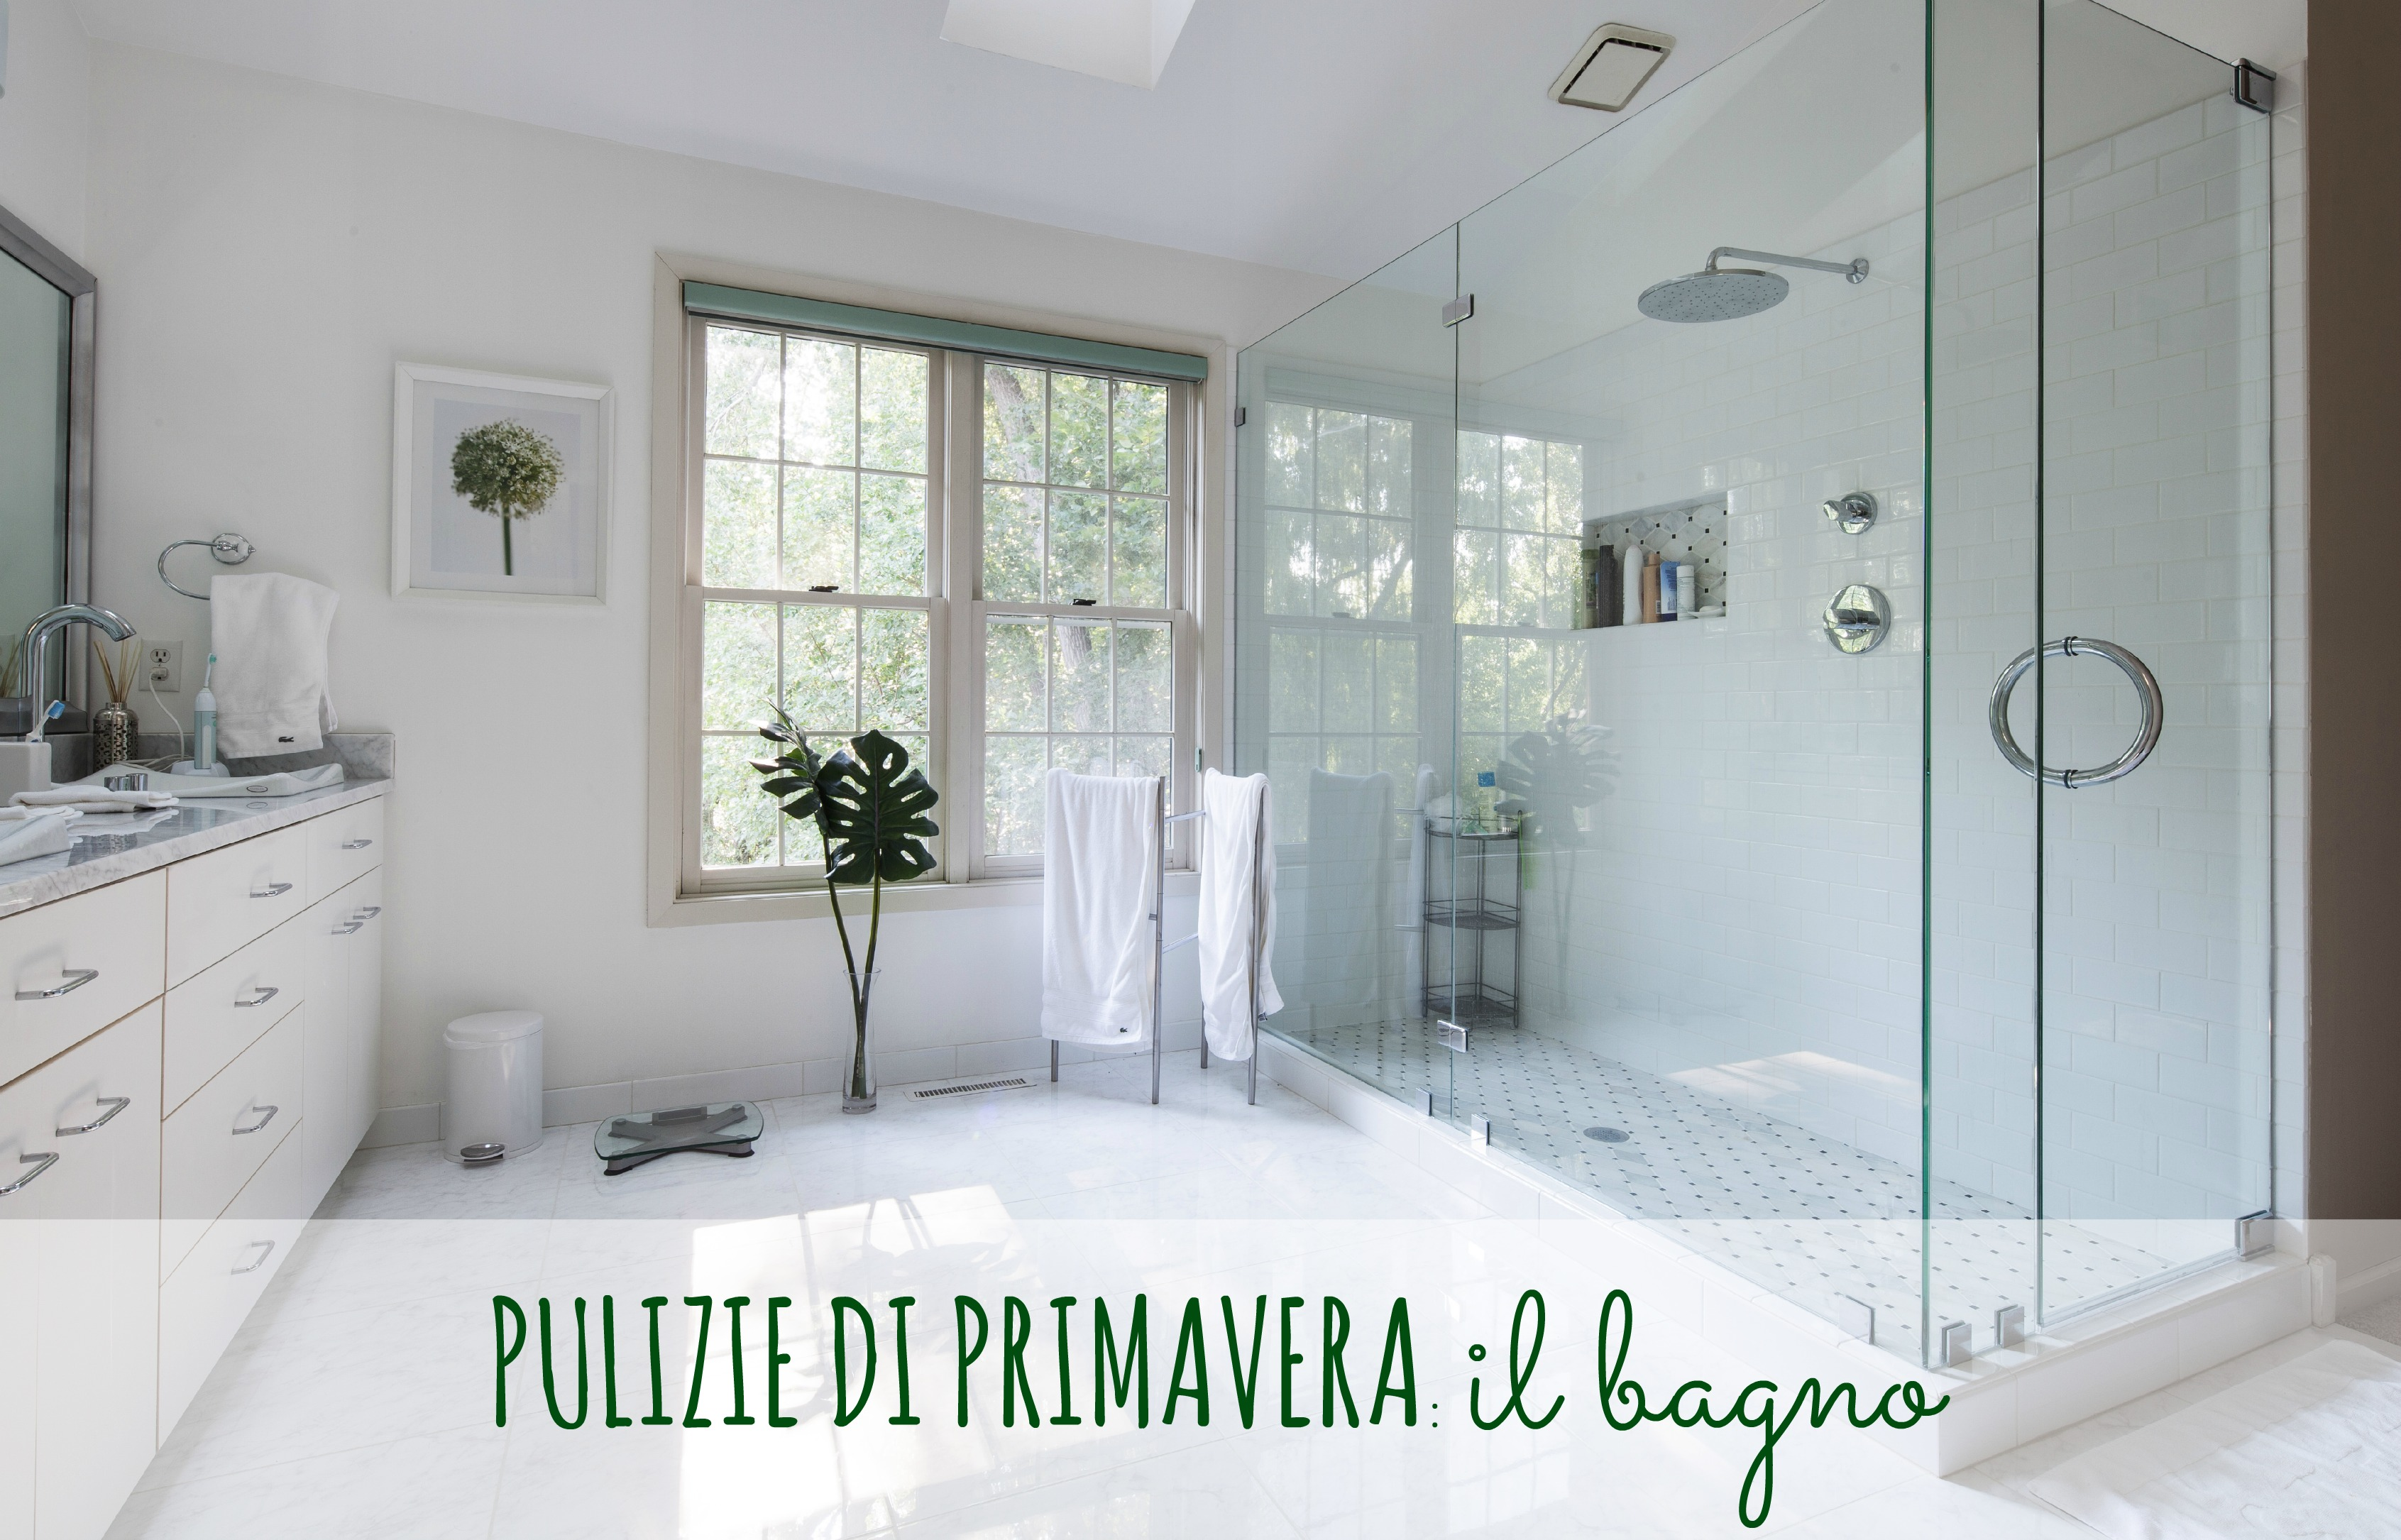 Pulizie di primavera il bagno babygreen for White bathroom ideas photo gallery